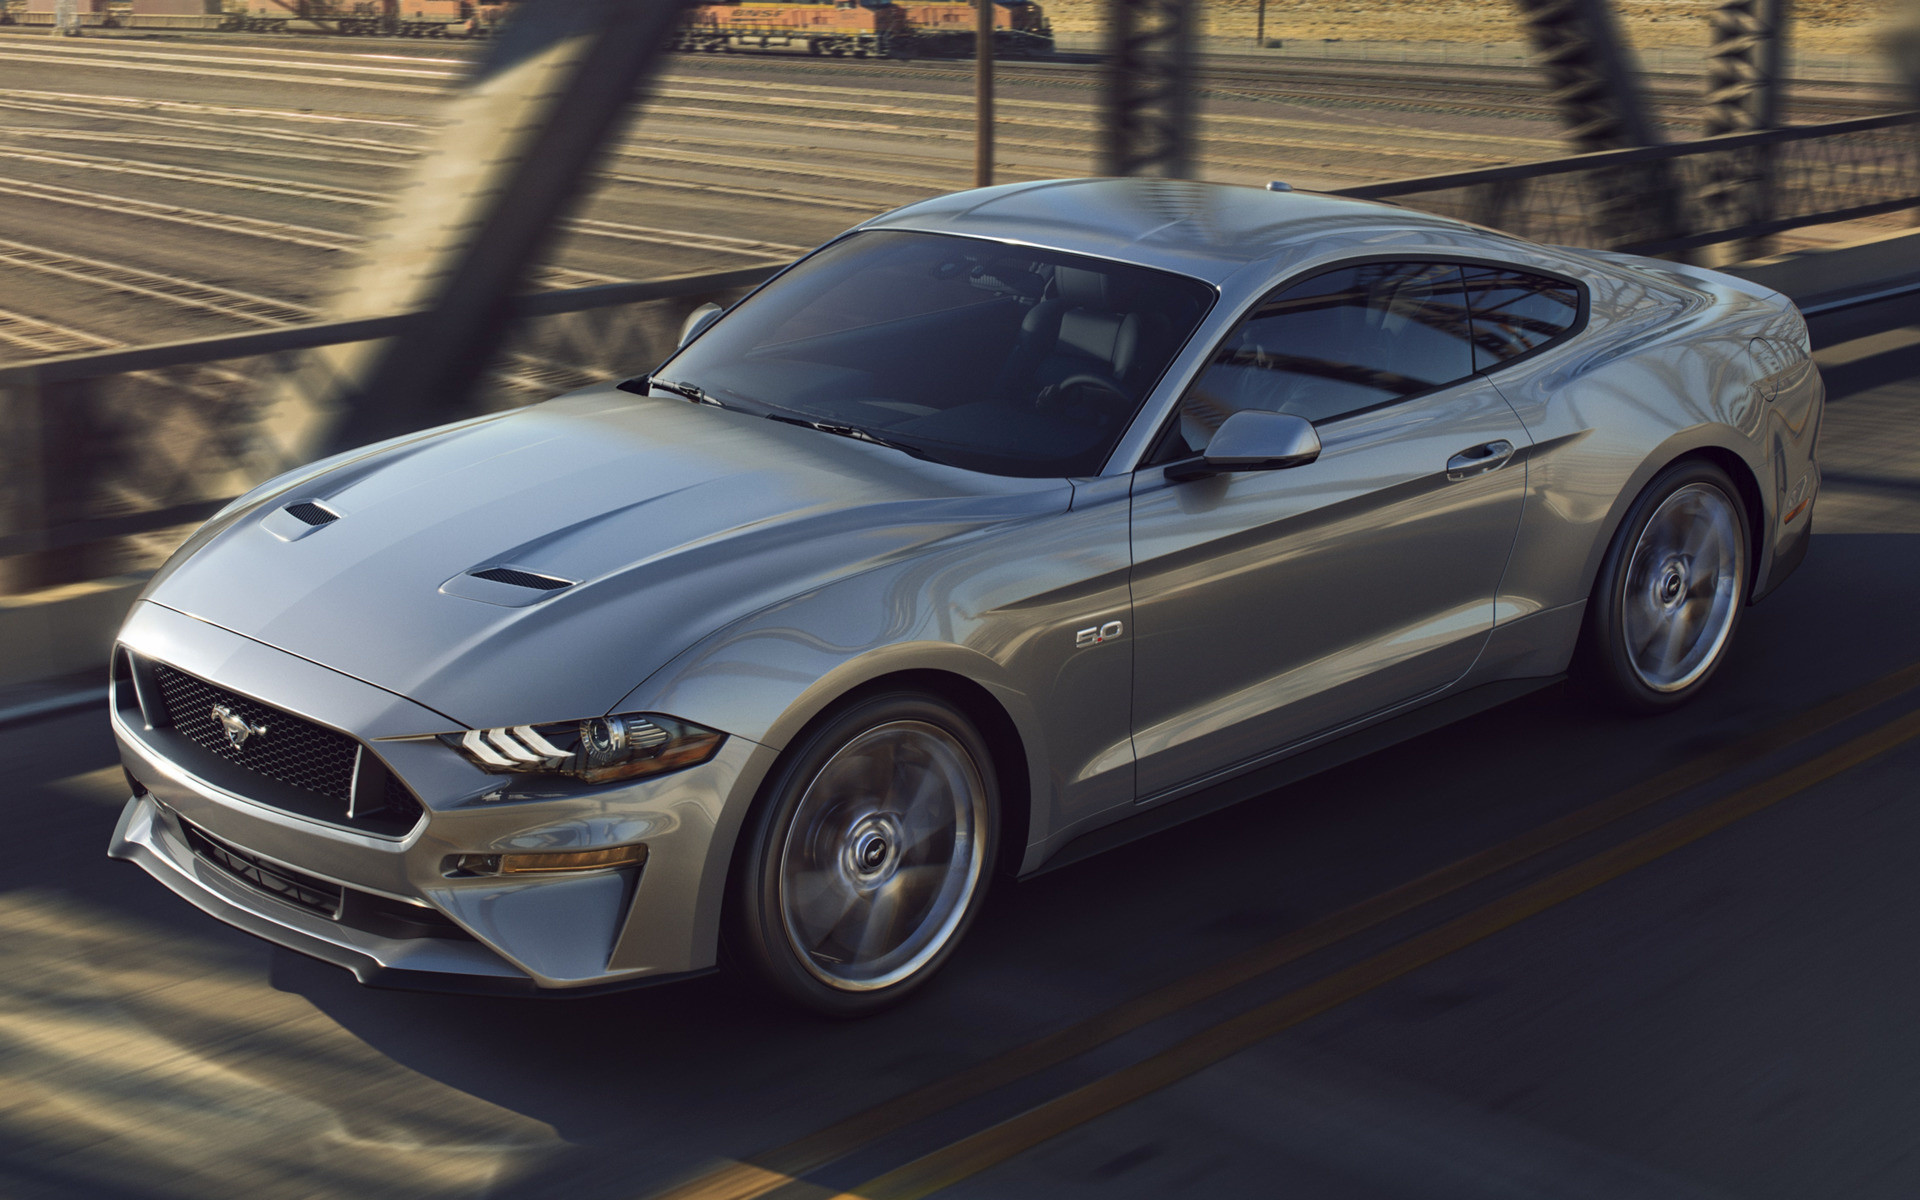 Wallpaper Ford Mustang 2018 Hd Automotive Cars 5863: 2018 Ford Mustang Shelby Wallpaper ·① WallpaperTag